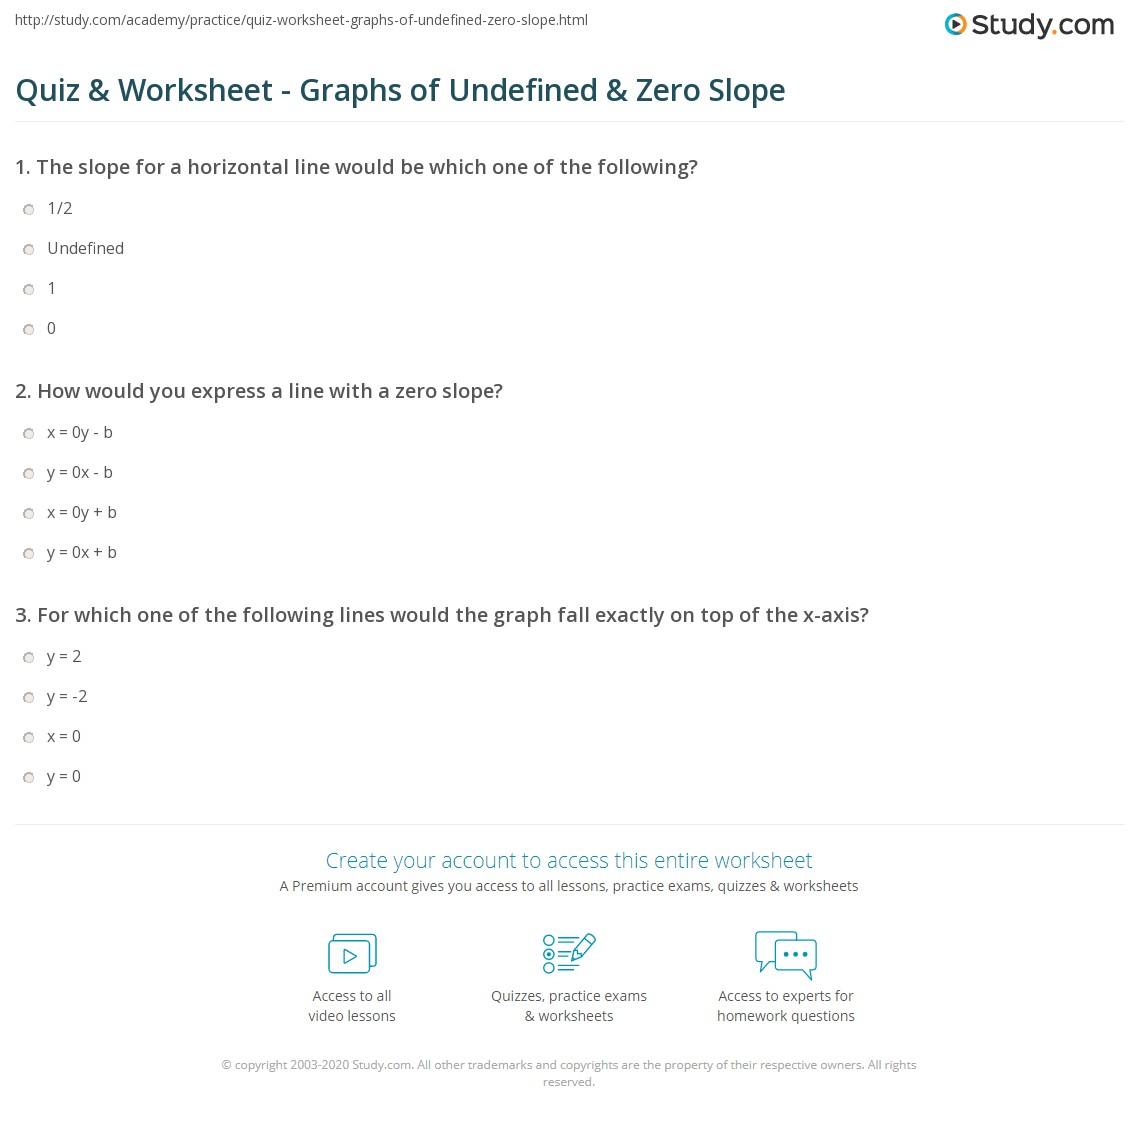 Worksheets Slope Fields Worksheet slope practice problems worksheet free worksheets library download quiz w ksheet gr phs of undef ed zero study